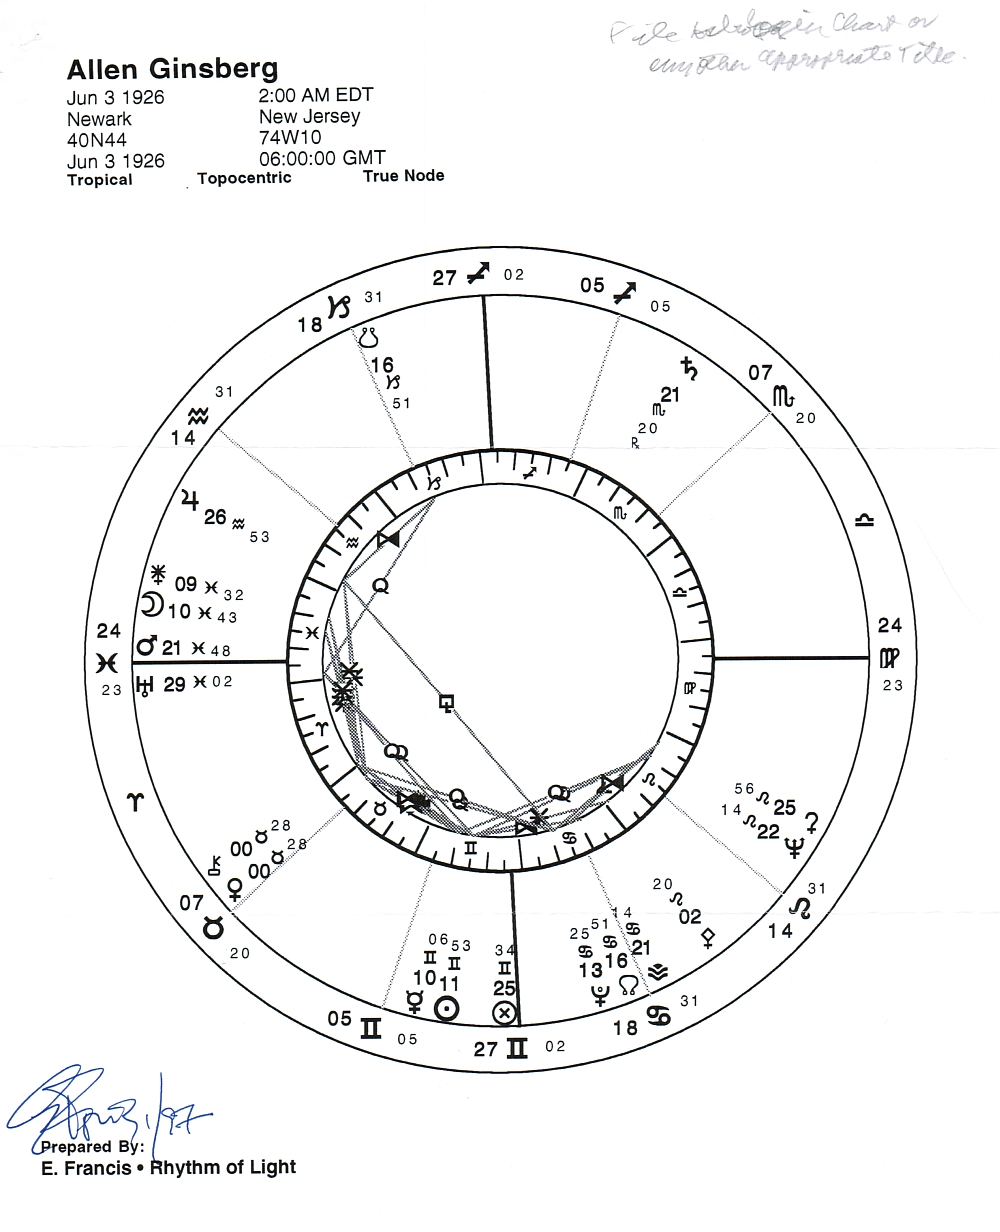 The allen ginsberg project allens astrological chart allens astrological chart nvjuhfo Images